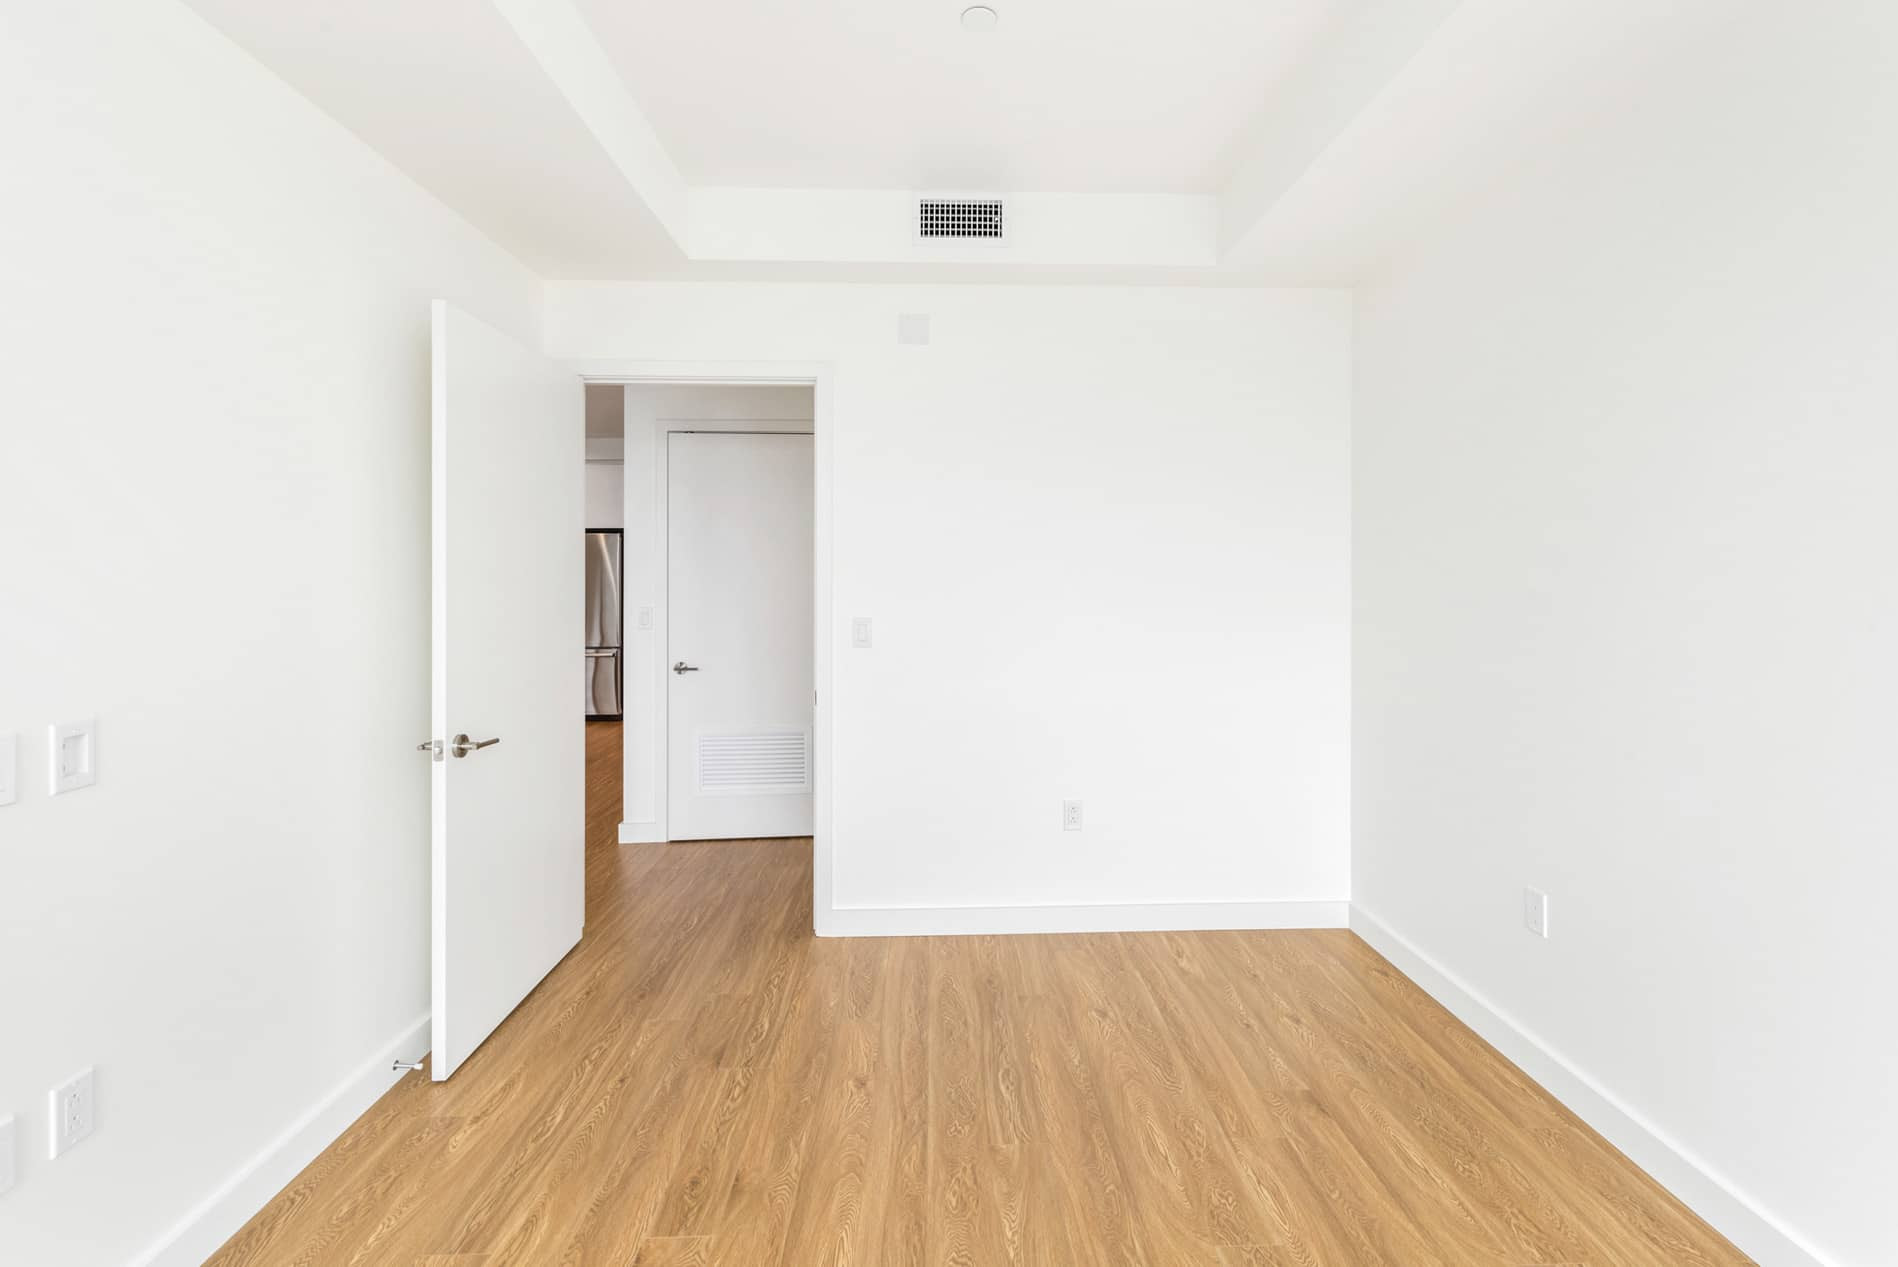 la hardwood flooring inc los angeles ca of floor plans at vision on wilshire los angeles within visiononwilshire 2018 a1b bed1 ad